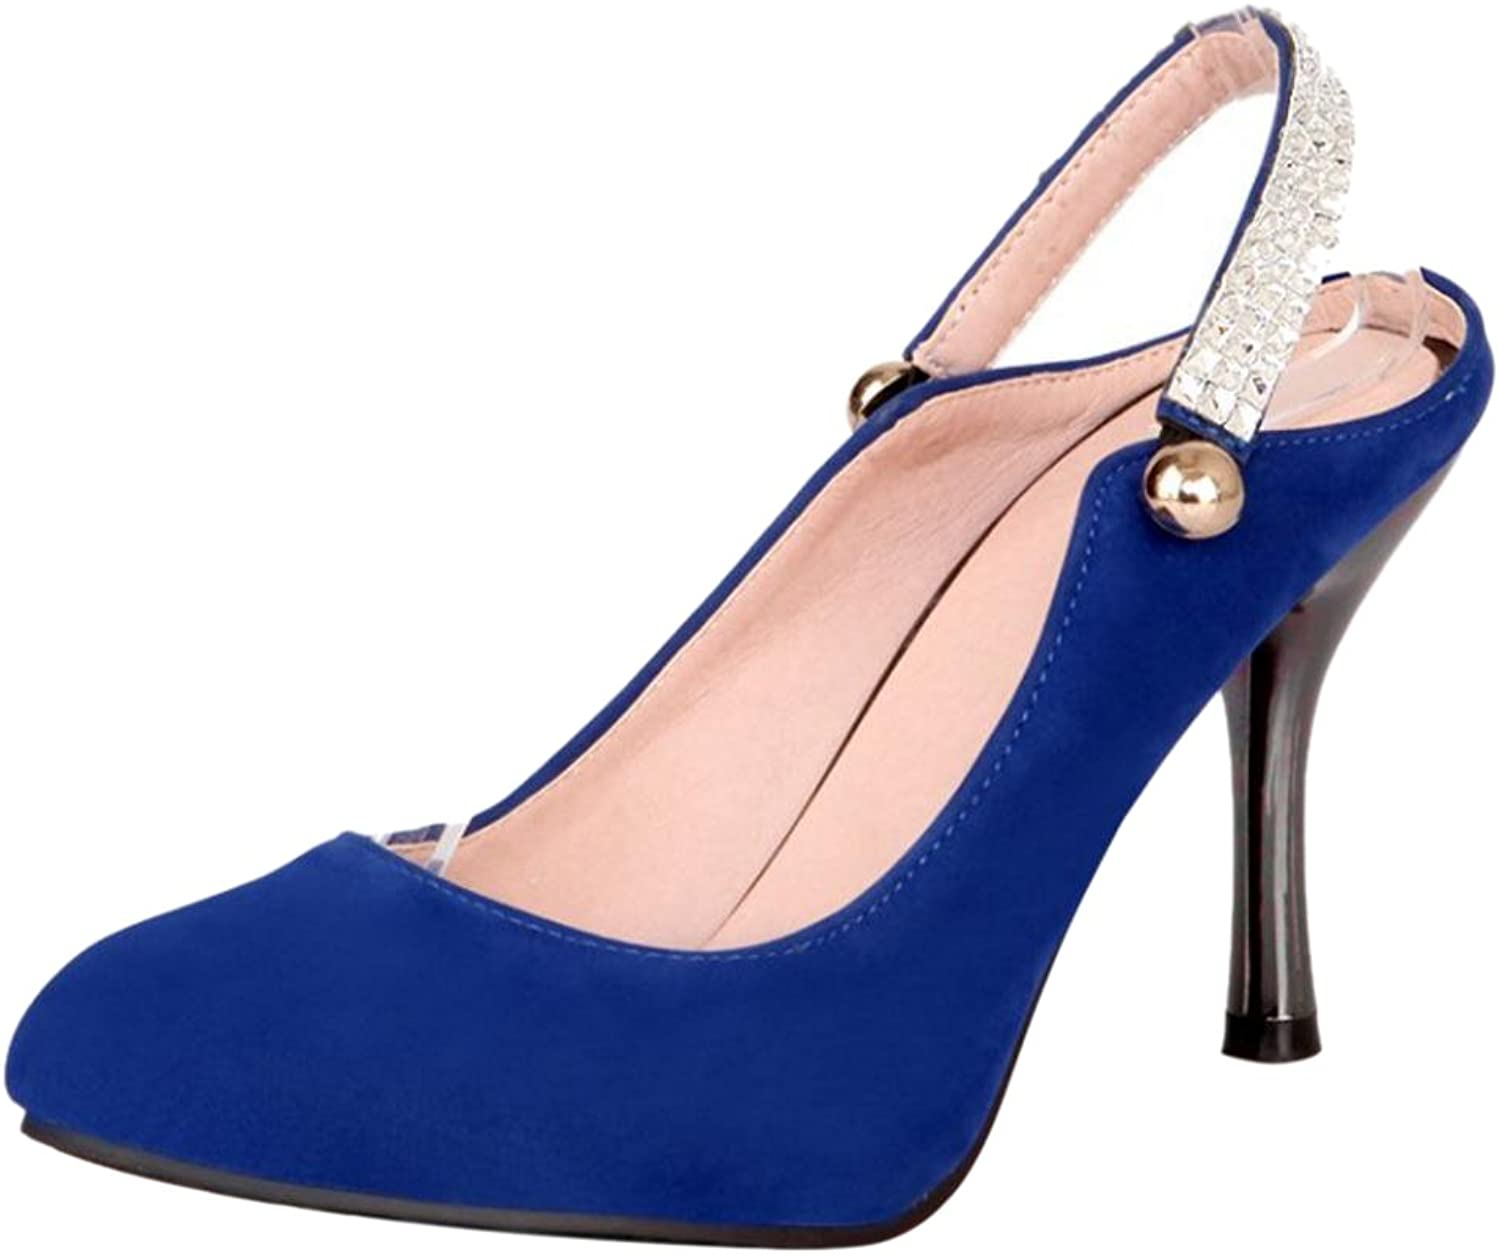 CarziCuzin Women Comfort Stiletto Mules Pumps